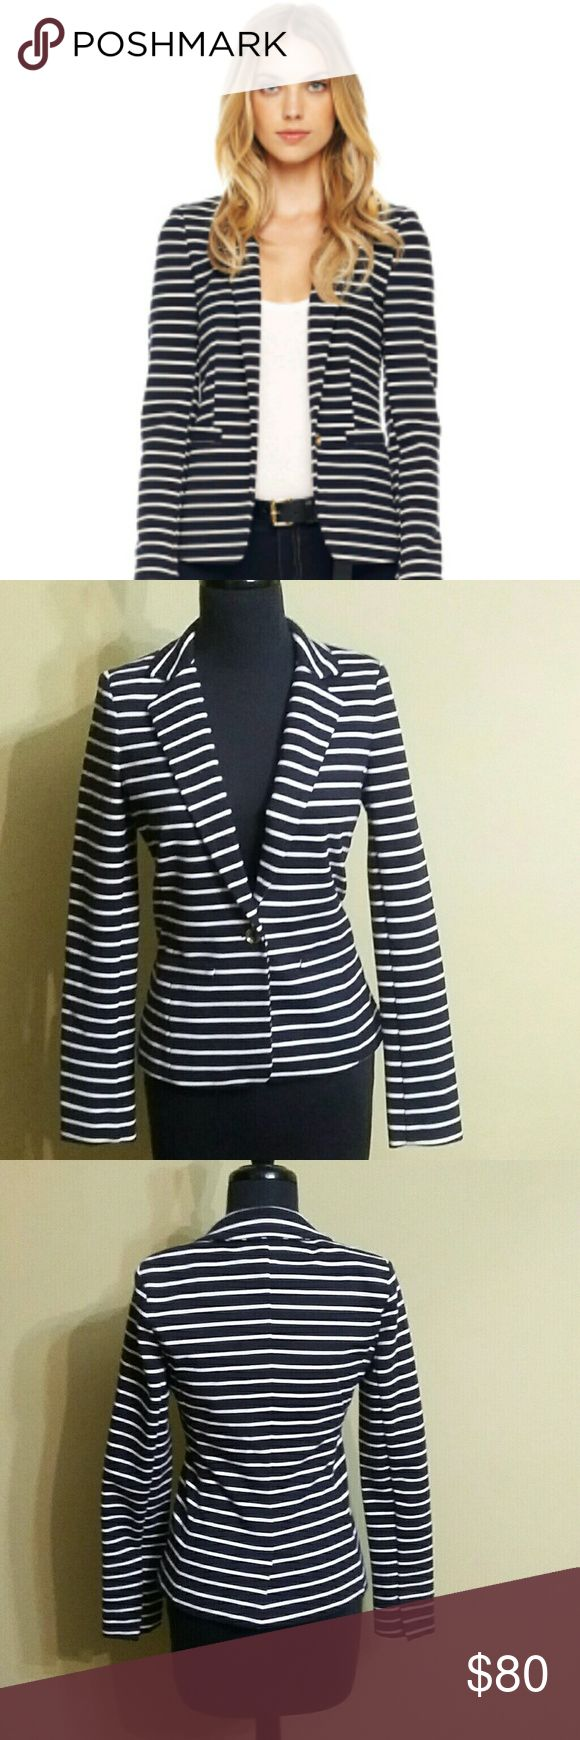 Michael Kors Blazer NWOT Michael Kors navy blue and white striped Blazer. Set alarm it has one gold button on it which is nice accent.  It is new without the tags. Michael Kors Jackets & Coats Blazers